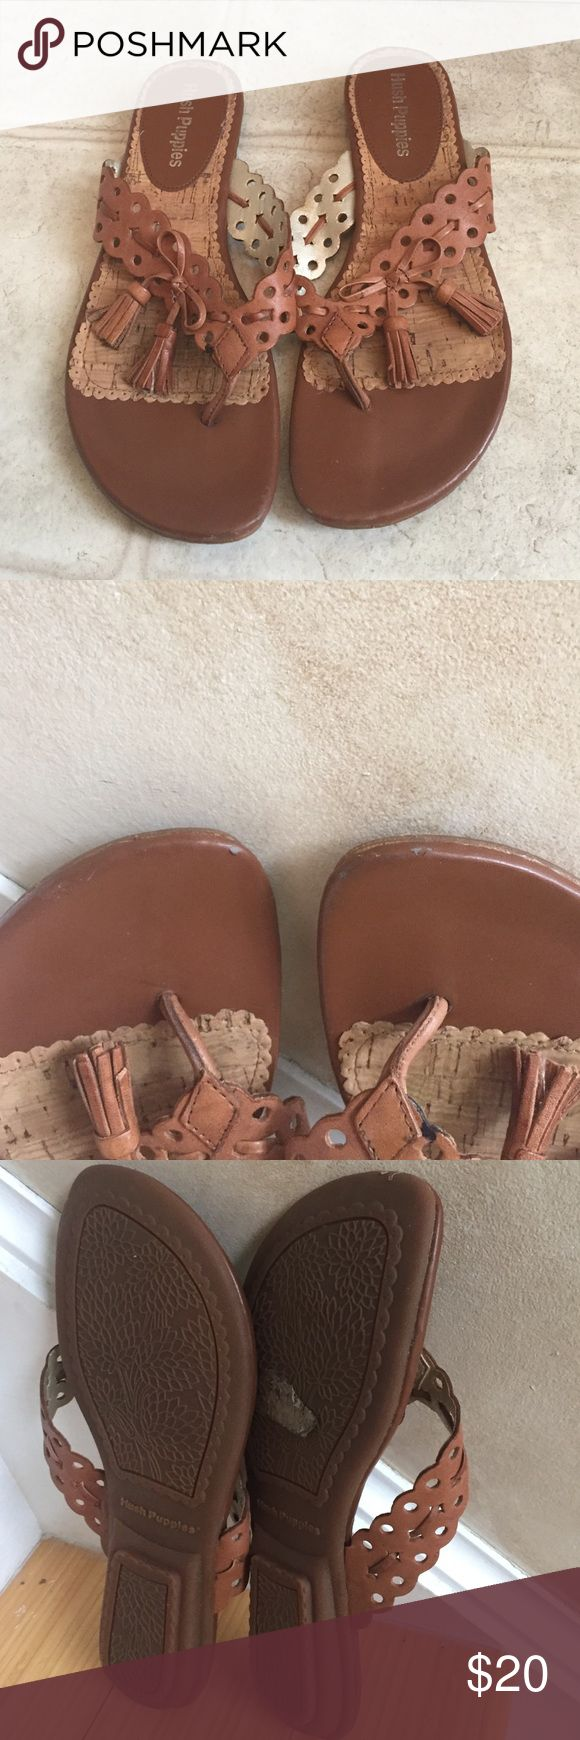 ☄️SALE ☄️Hush Puppies camel flip flop sandals Elegant and simply nice Hush Puppies Shoes Sandals